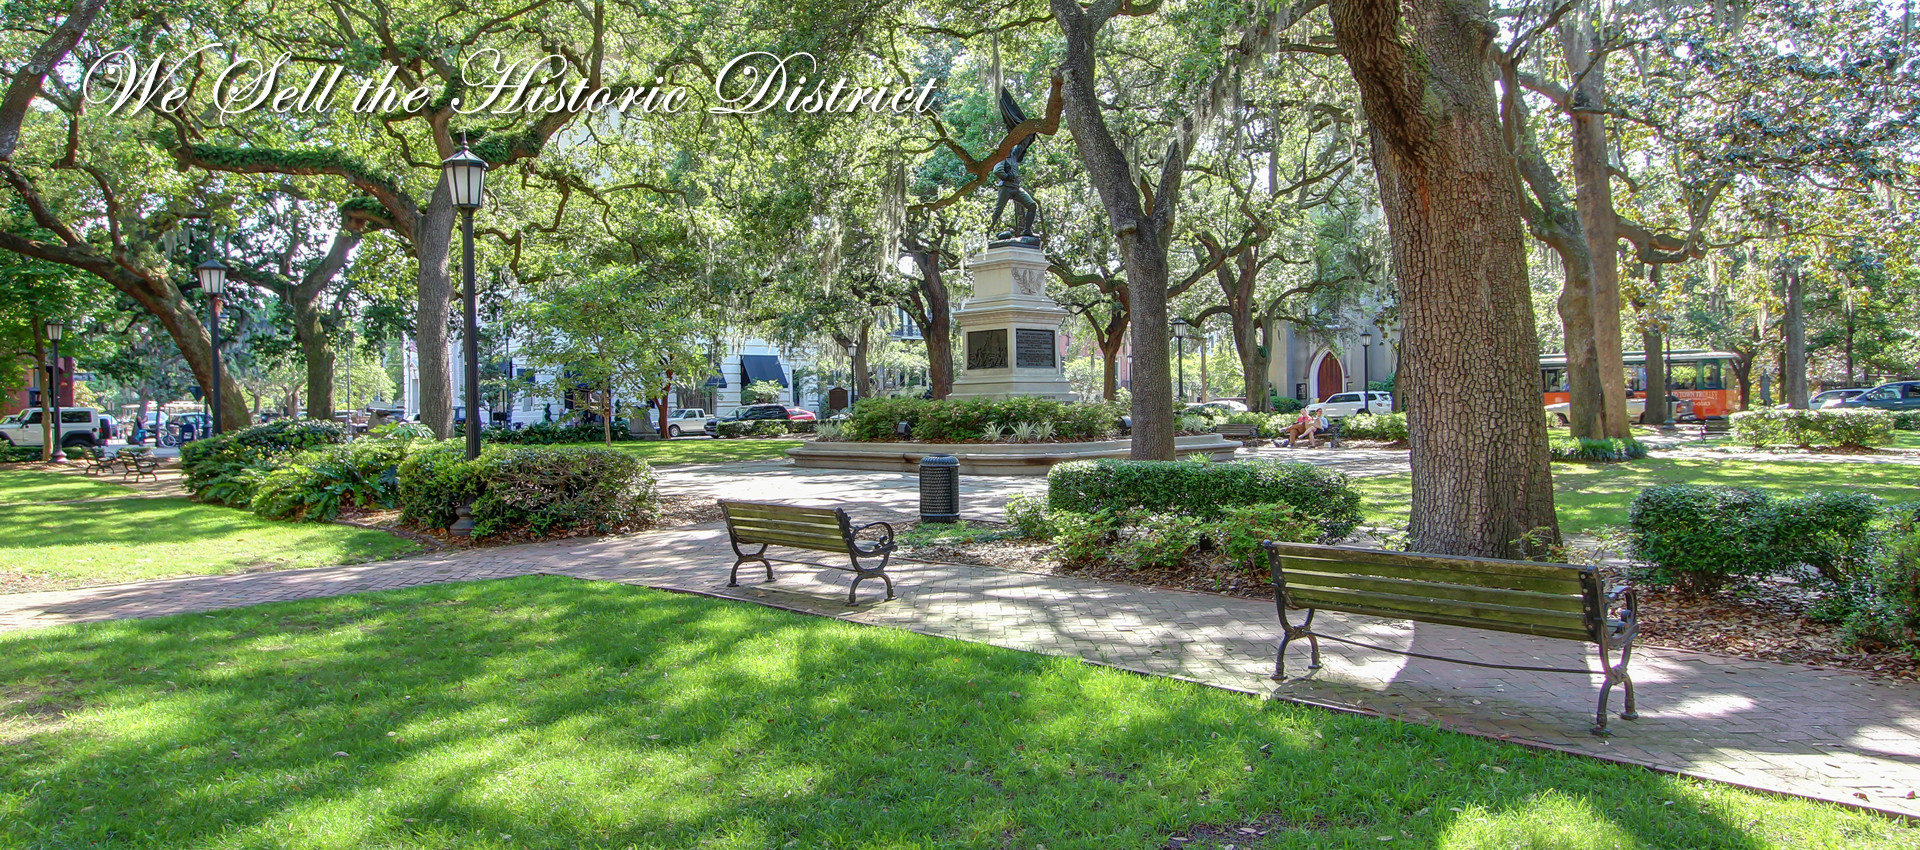 00-mopper-kelly-realtors-savannah-historic-district